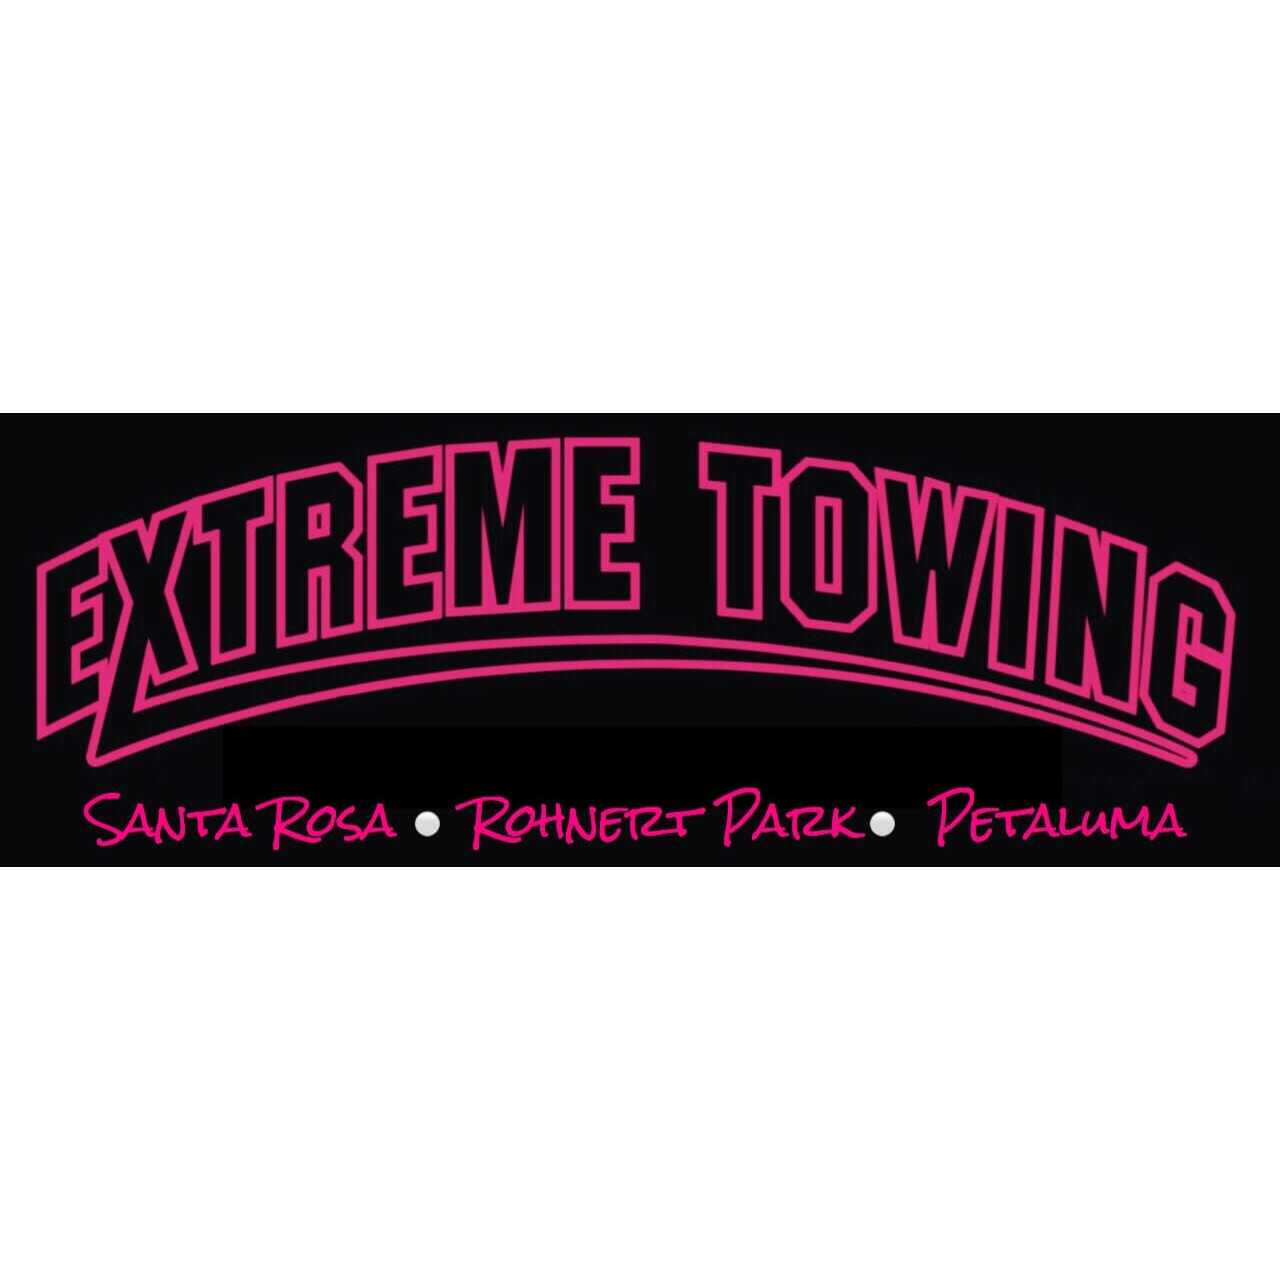 Extreme Towing